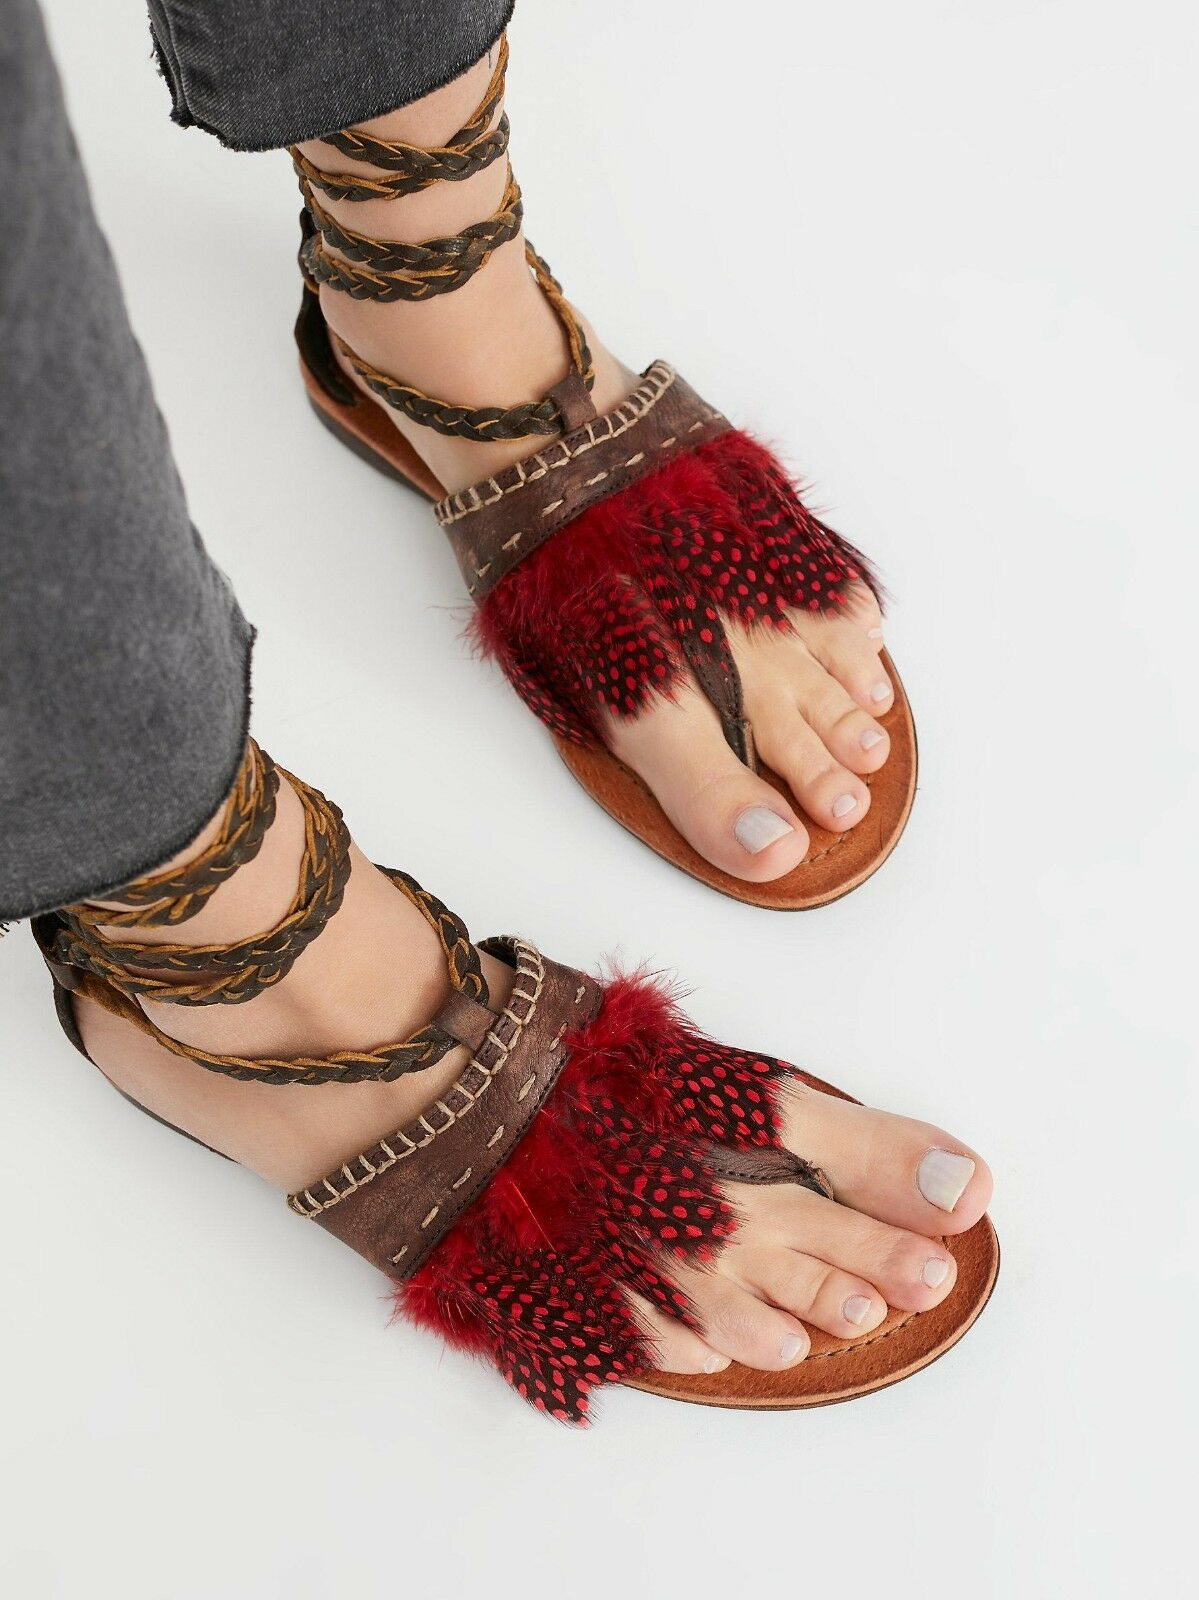 Free People Bora Bora Tie Sandals Braided Brown Leather Red Feathers Size 37 New